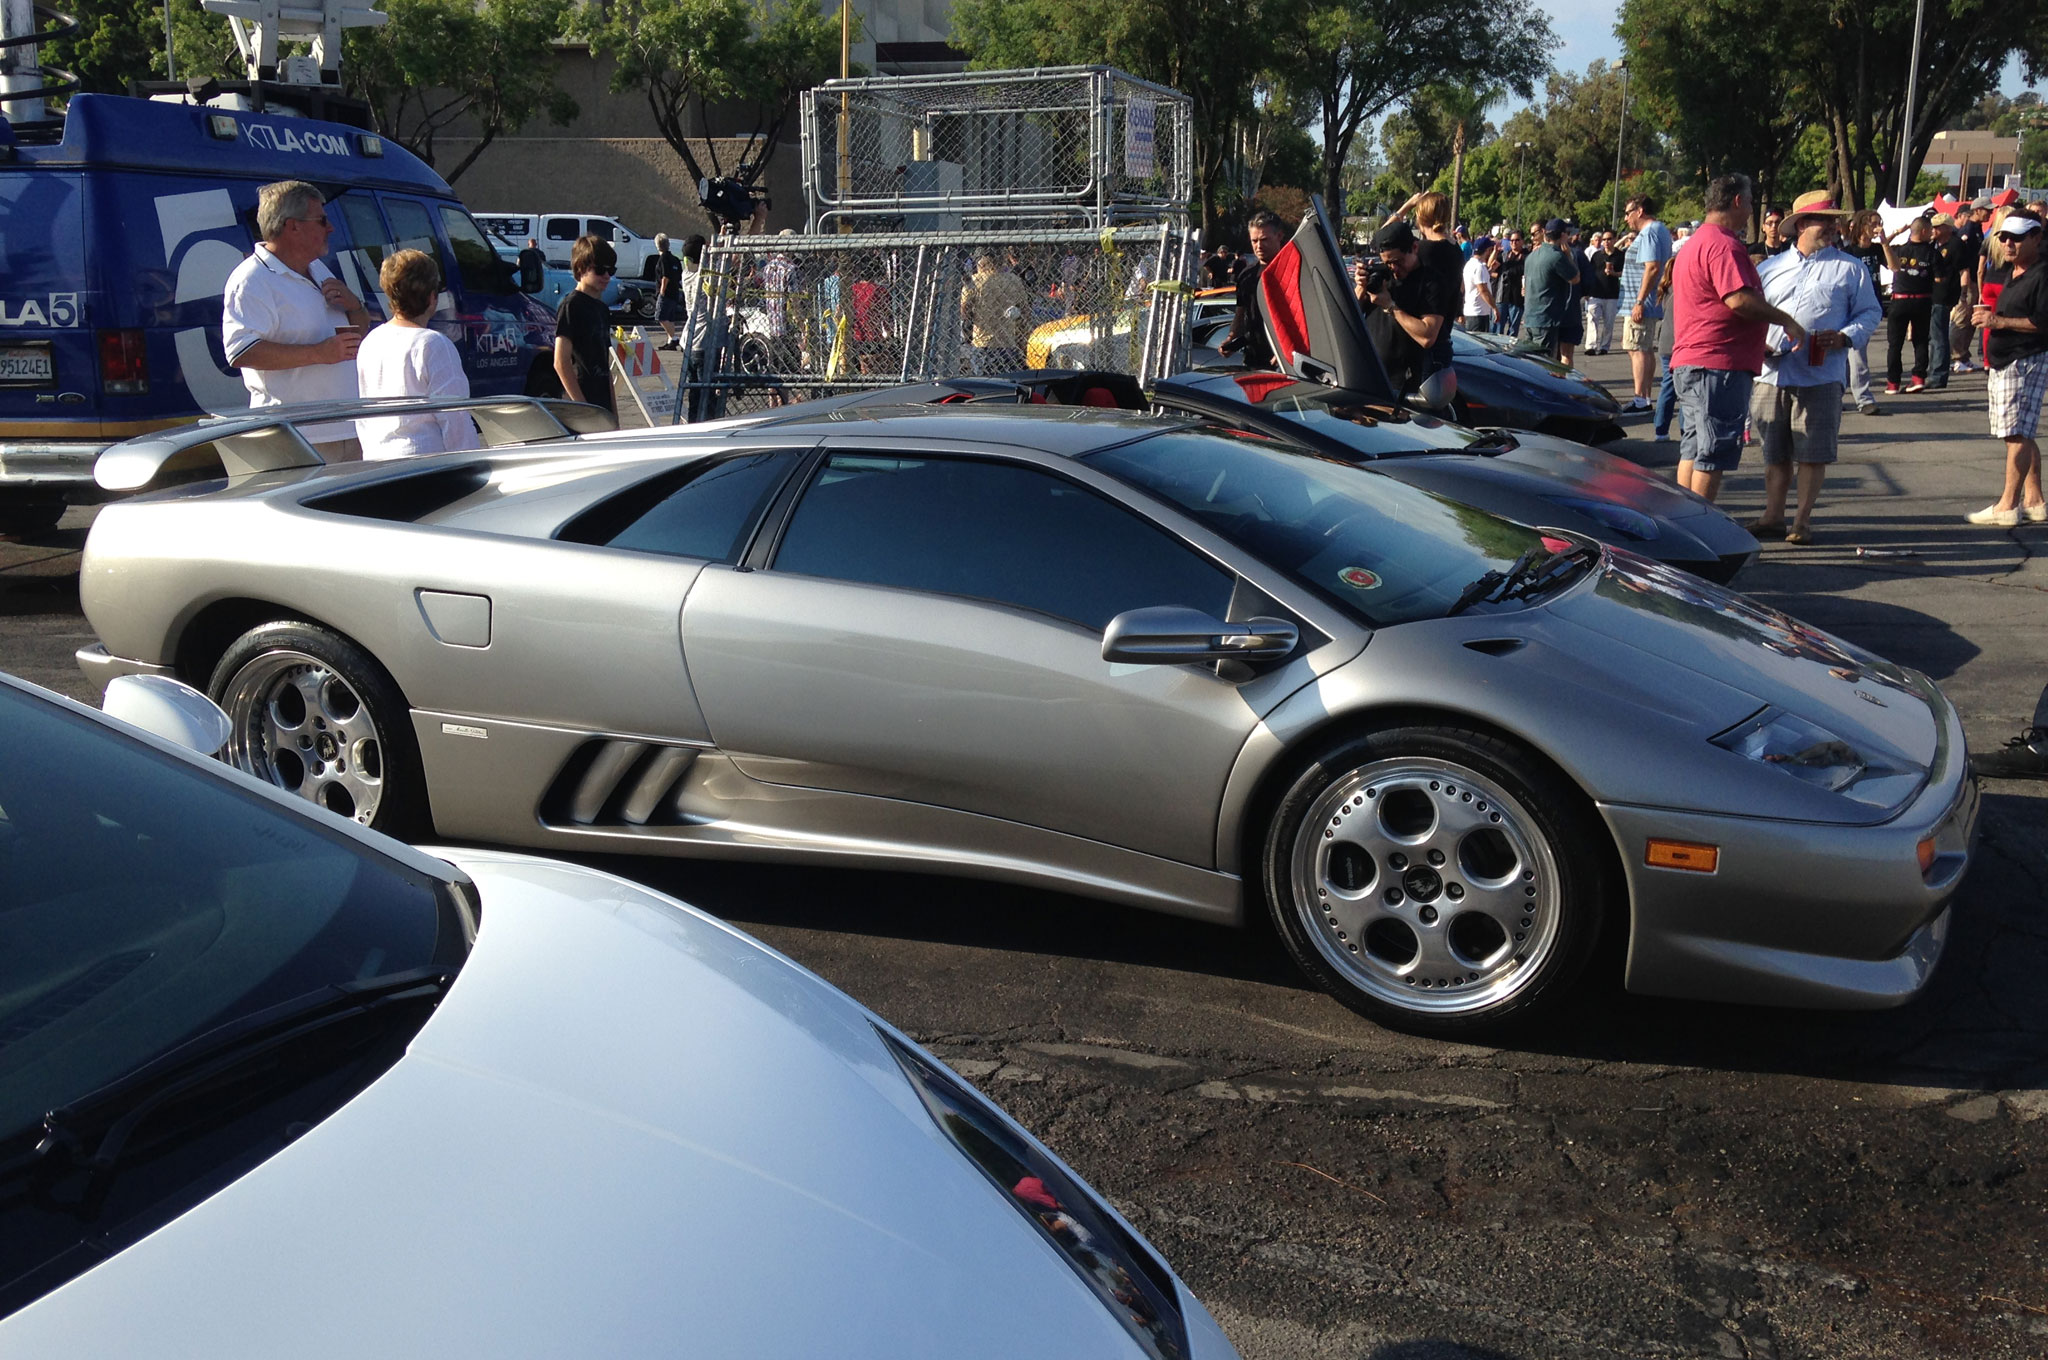 The Diablo VT is one of a few Lambos that are in the 200 mph-plus club. This one in silver looks fast standing still.